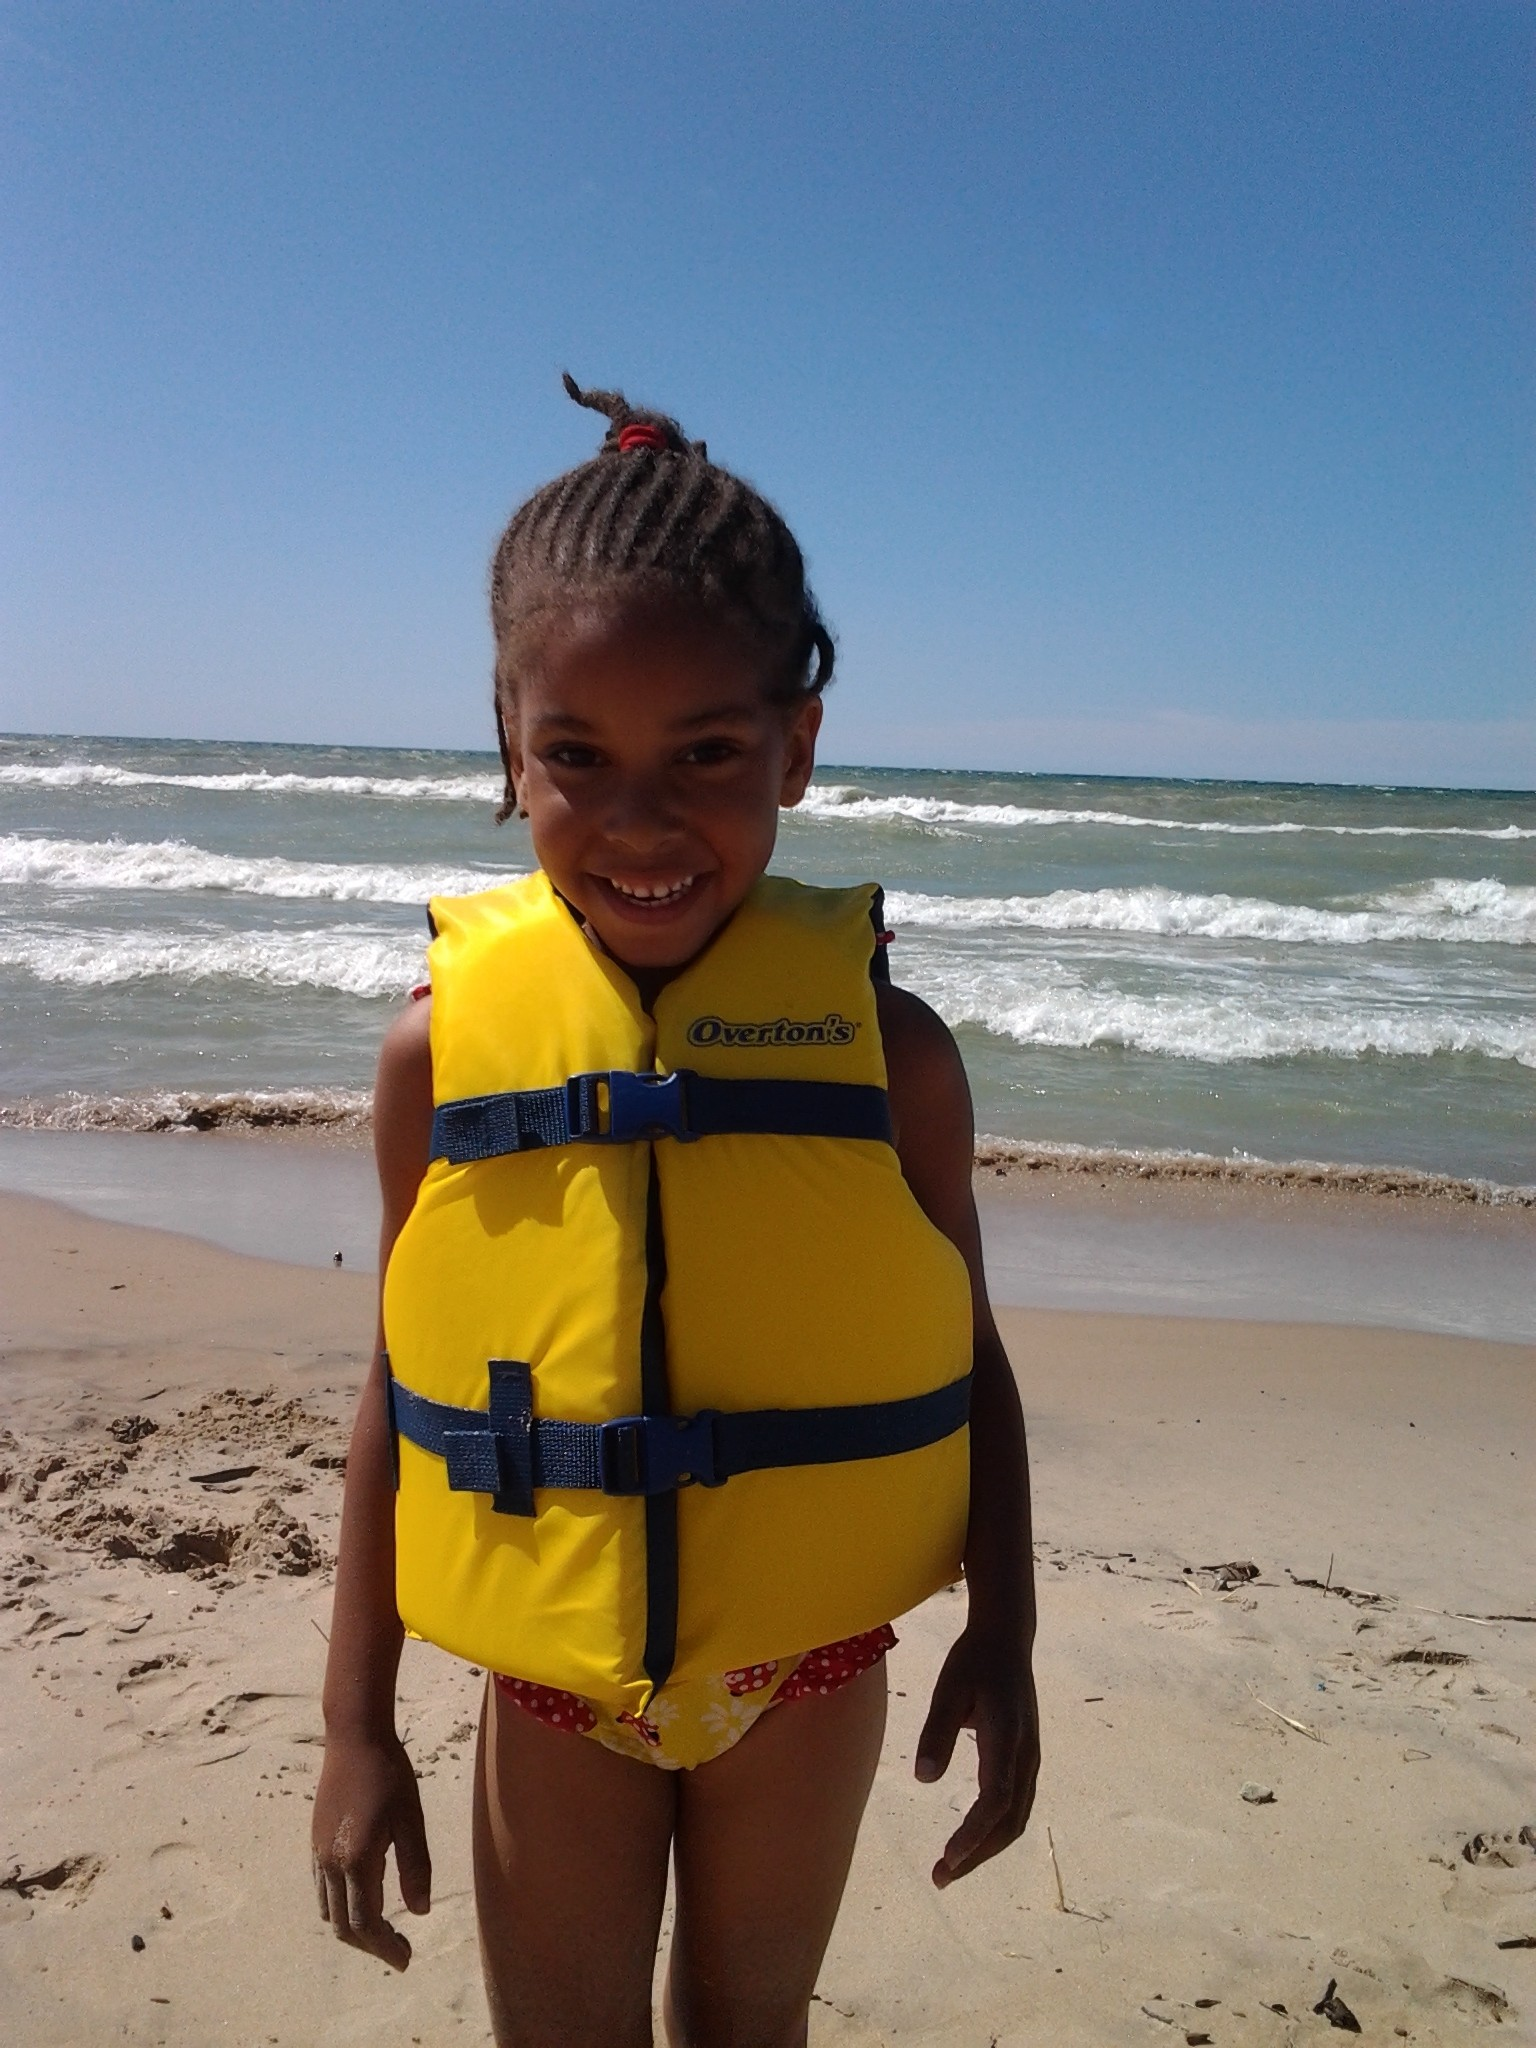 My girll at the beach